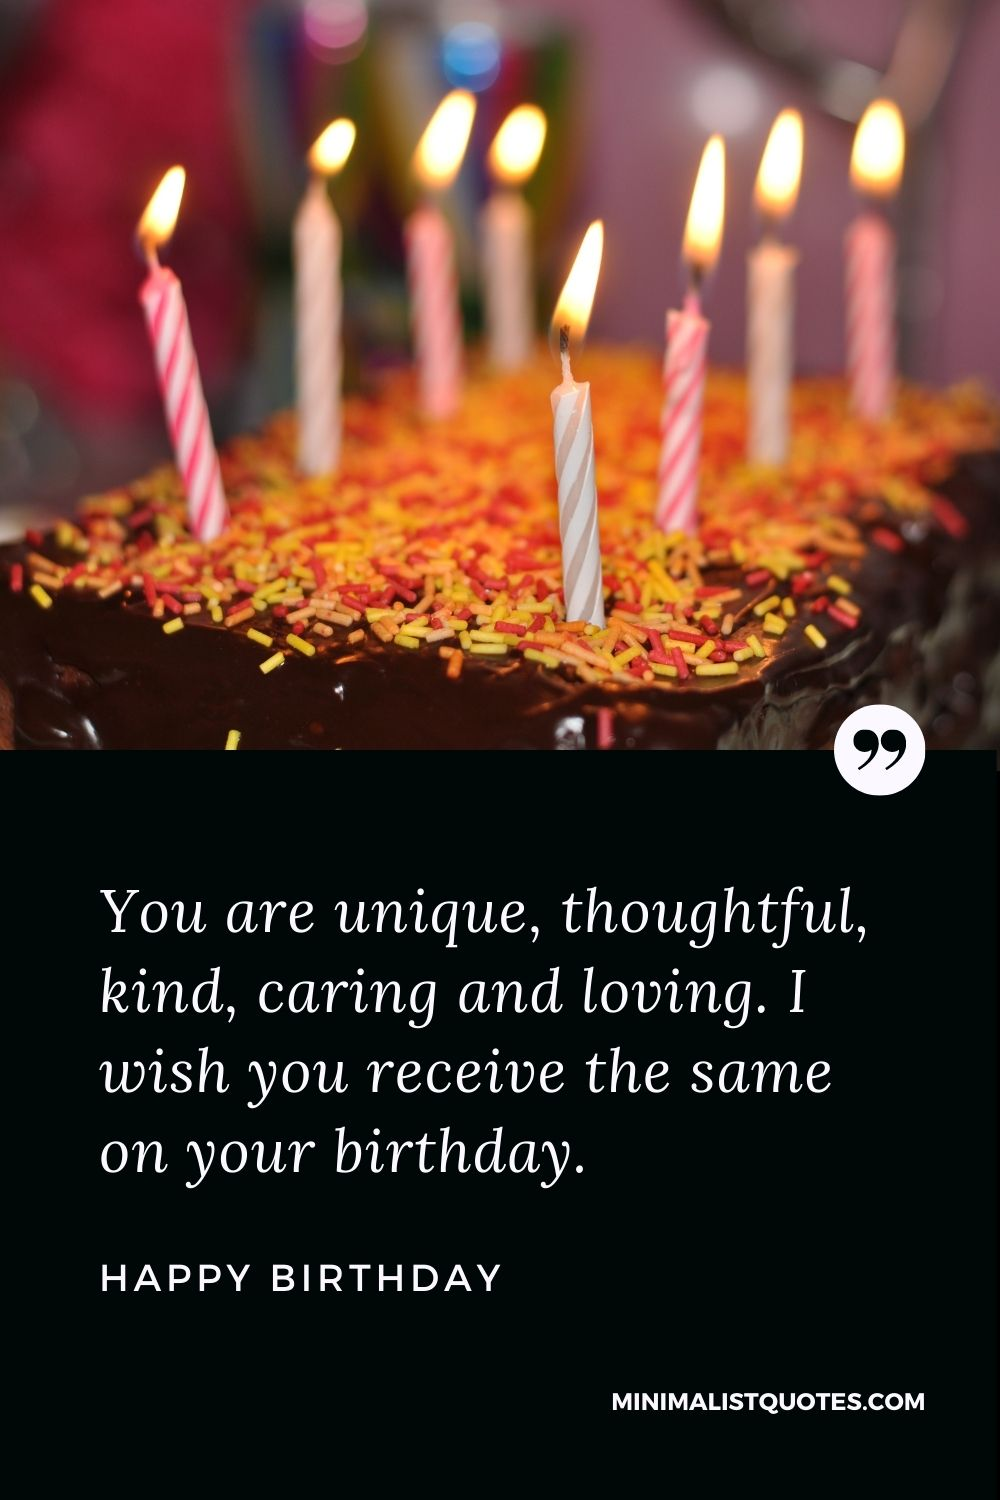 Happy Birthday Wish- You are unique, thoughtful, kind, caring and loving. I wish you receive the same on your birthday.